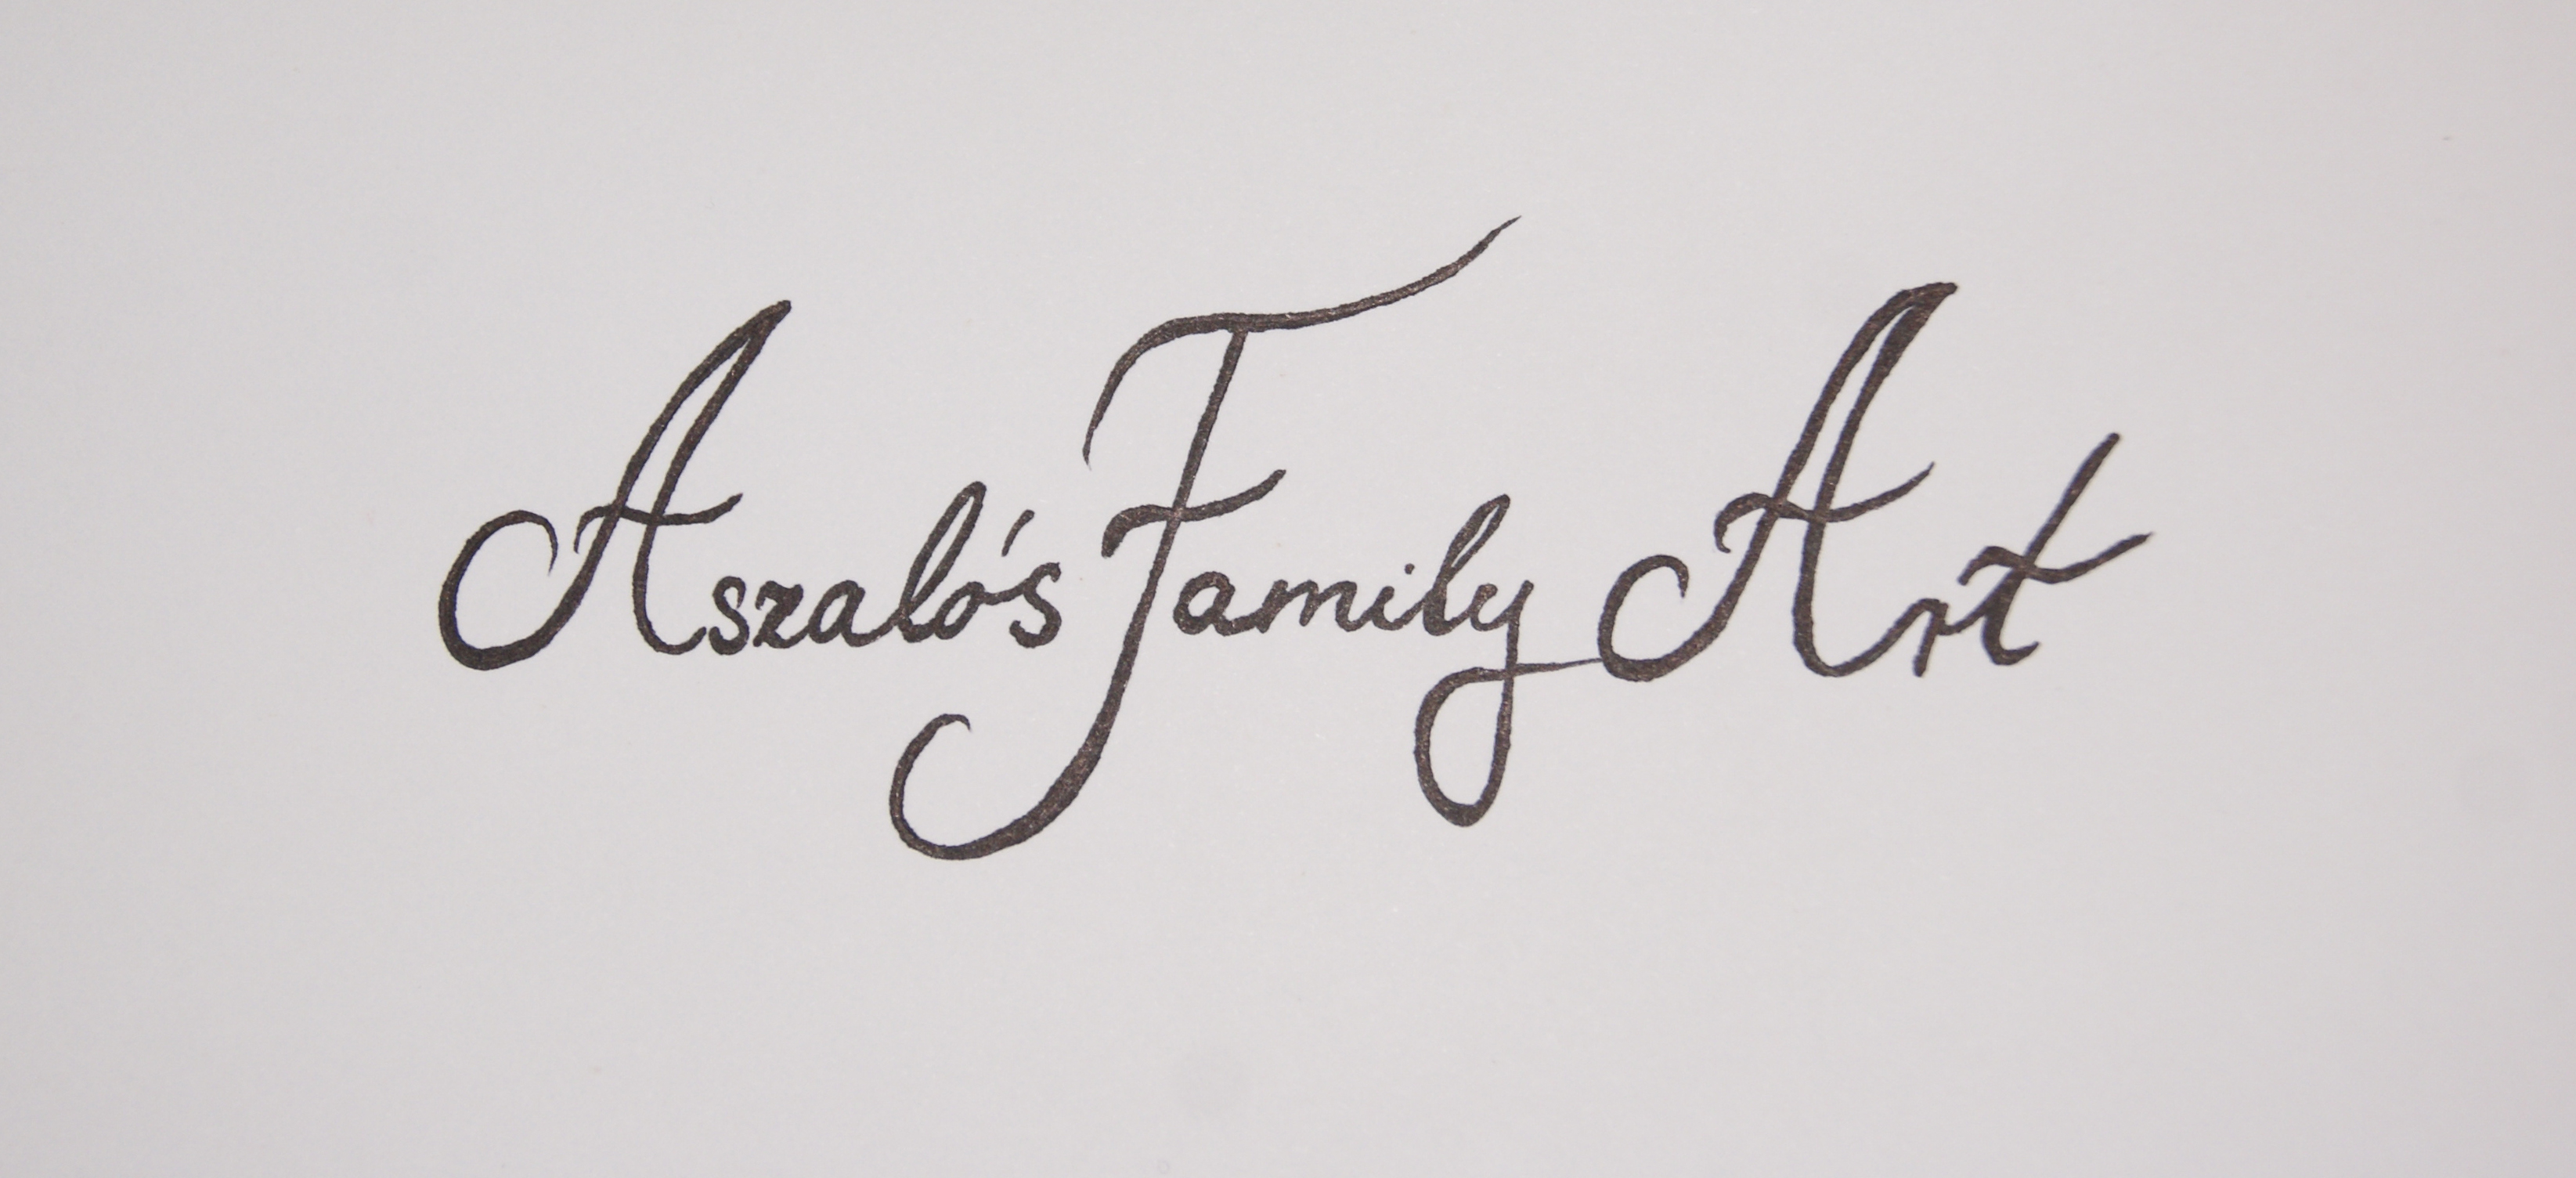 AszalÓs Art Family's Signature